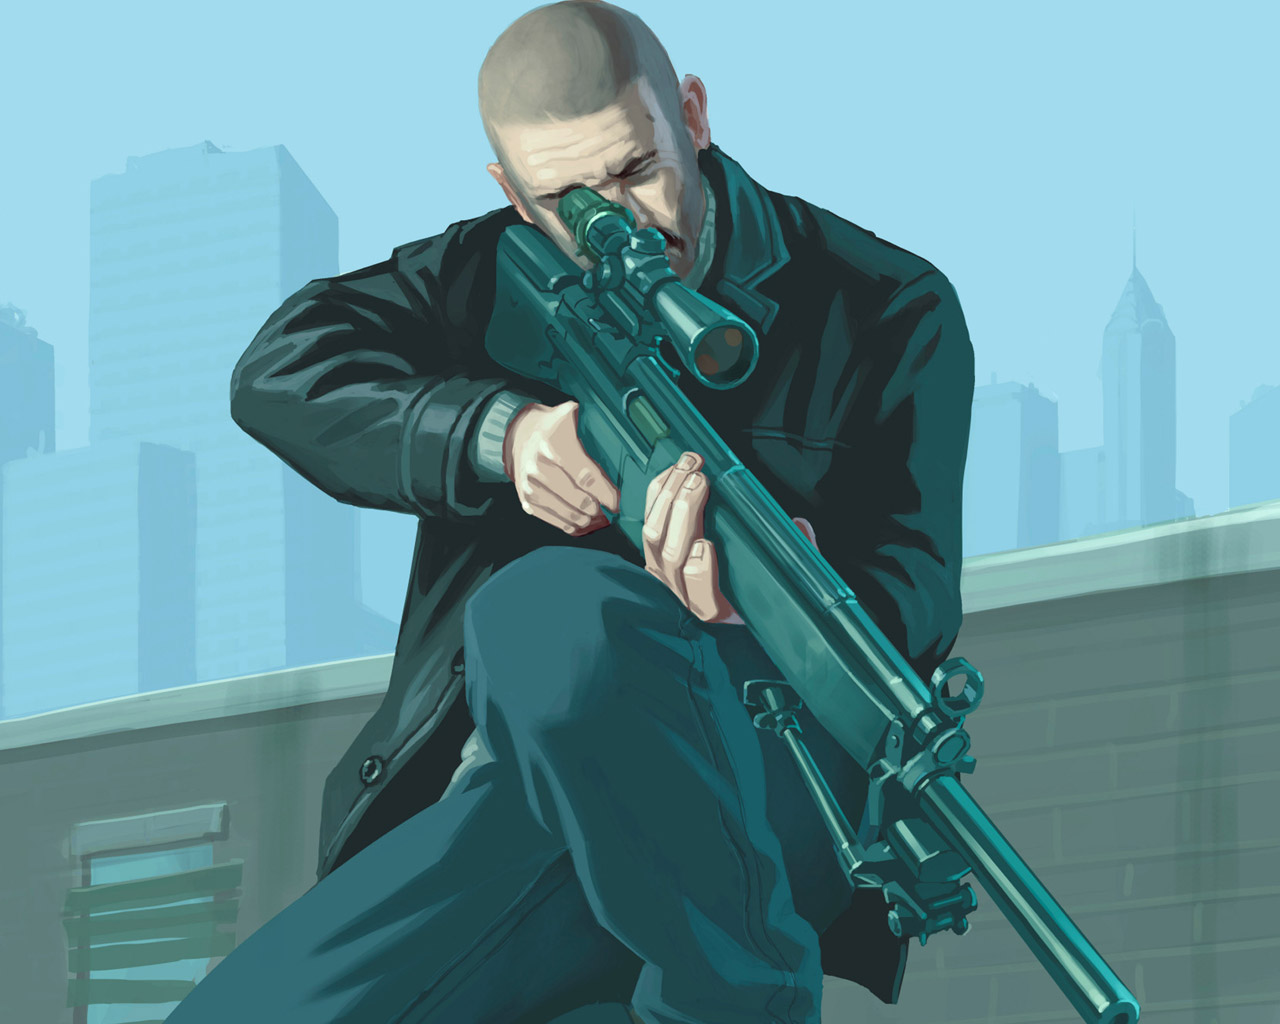 Free Grand Theft Auto IV Wallpaper in 1280x1024